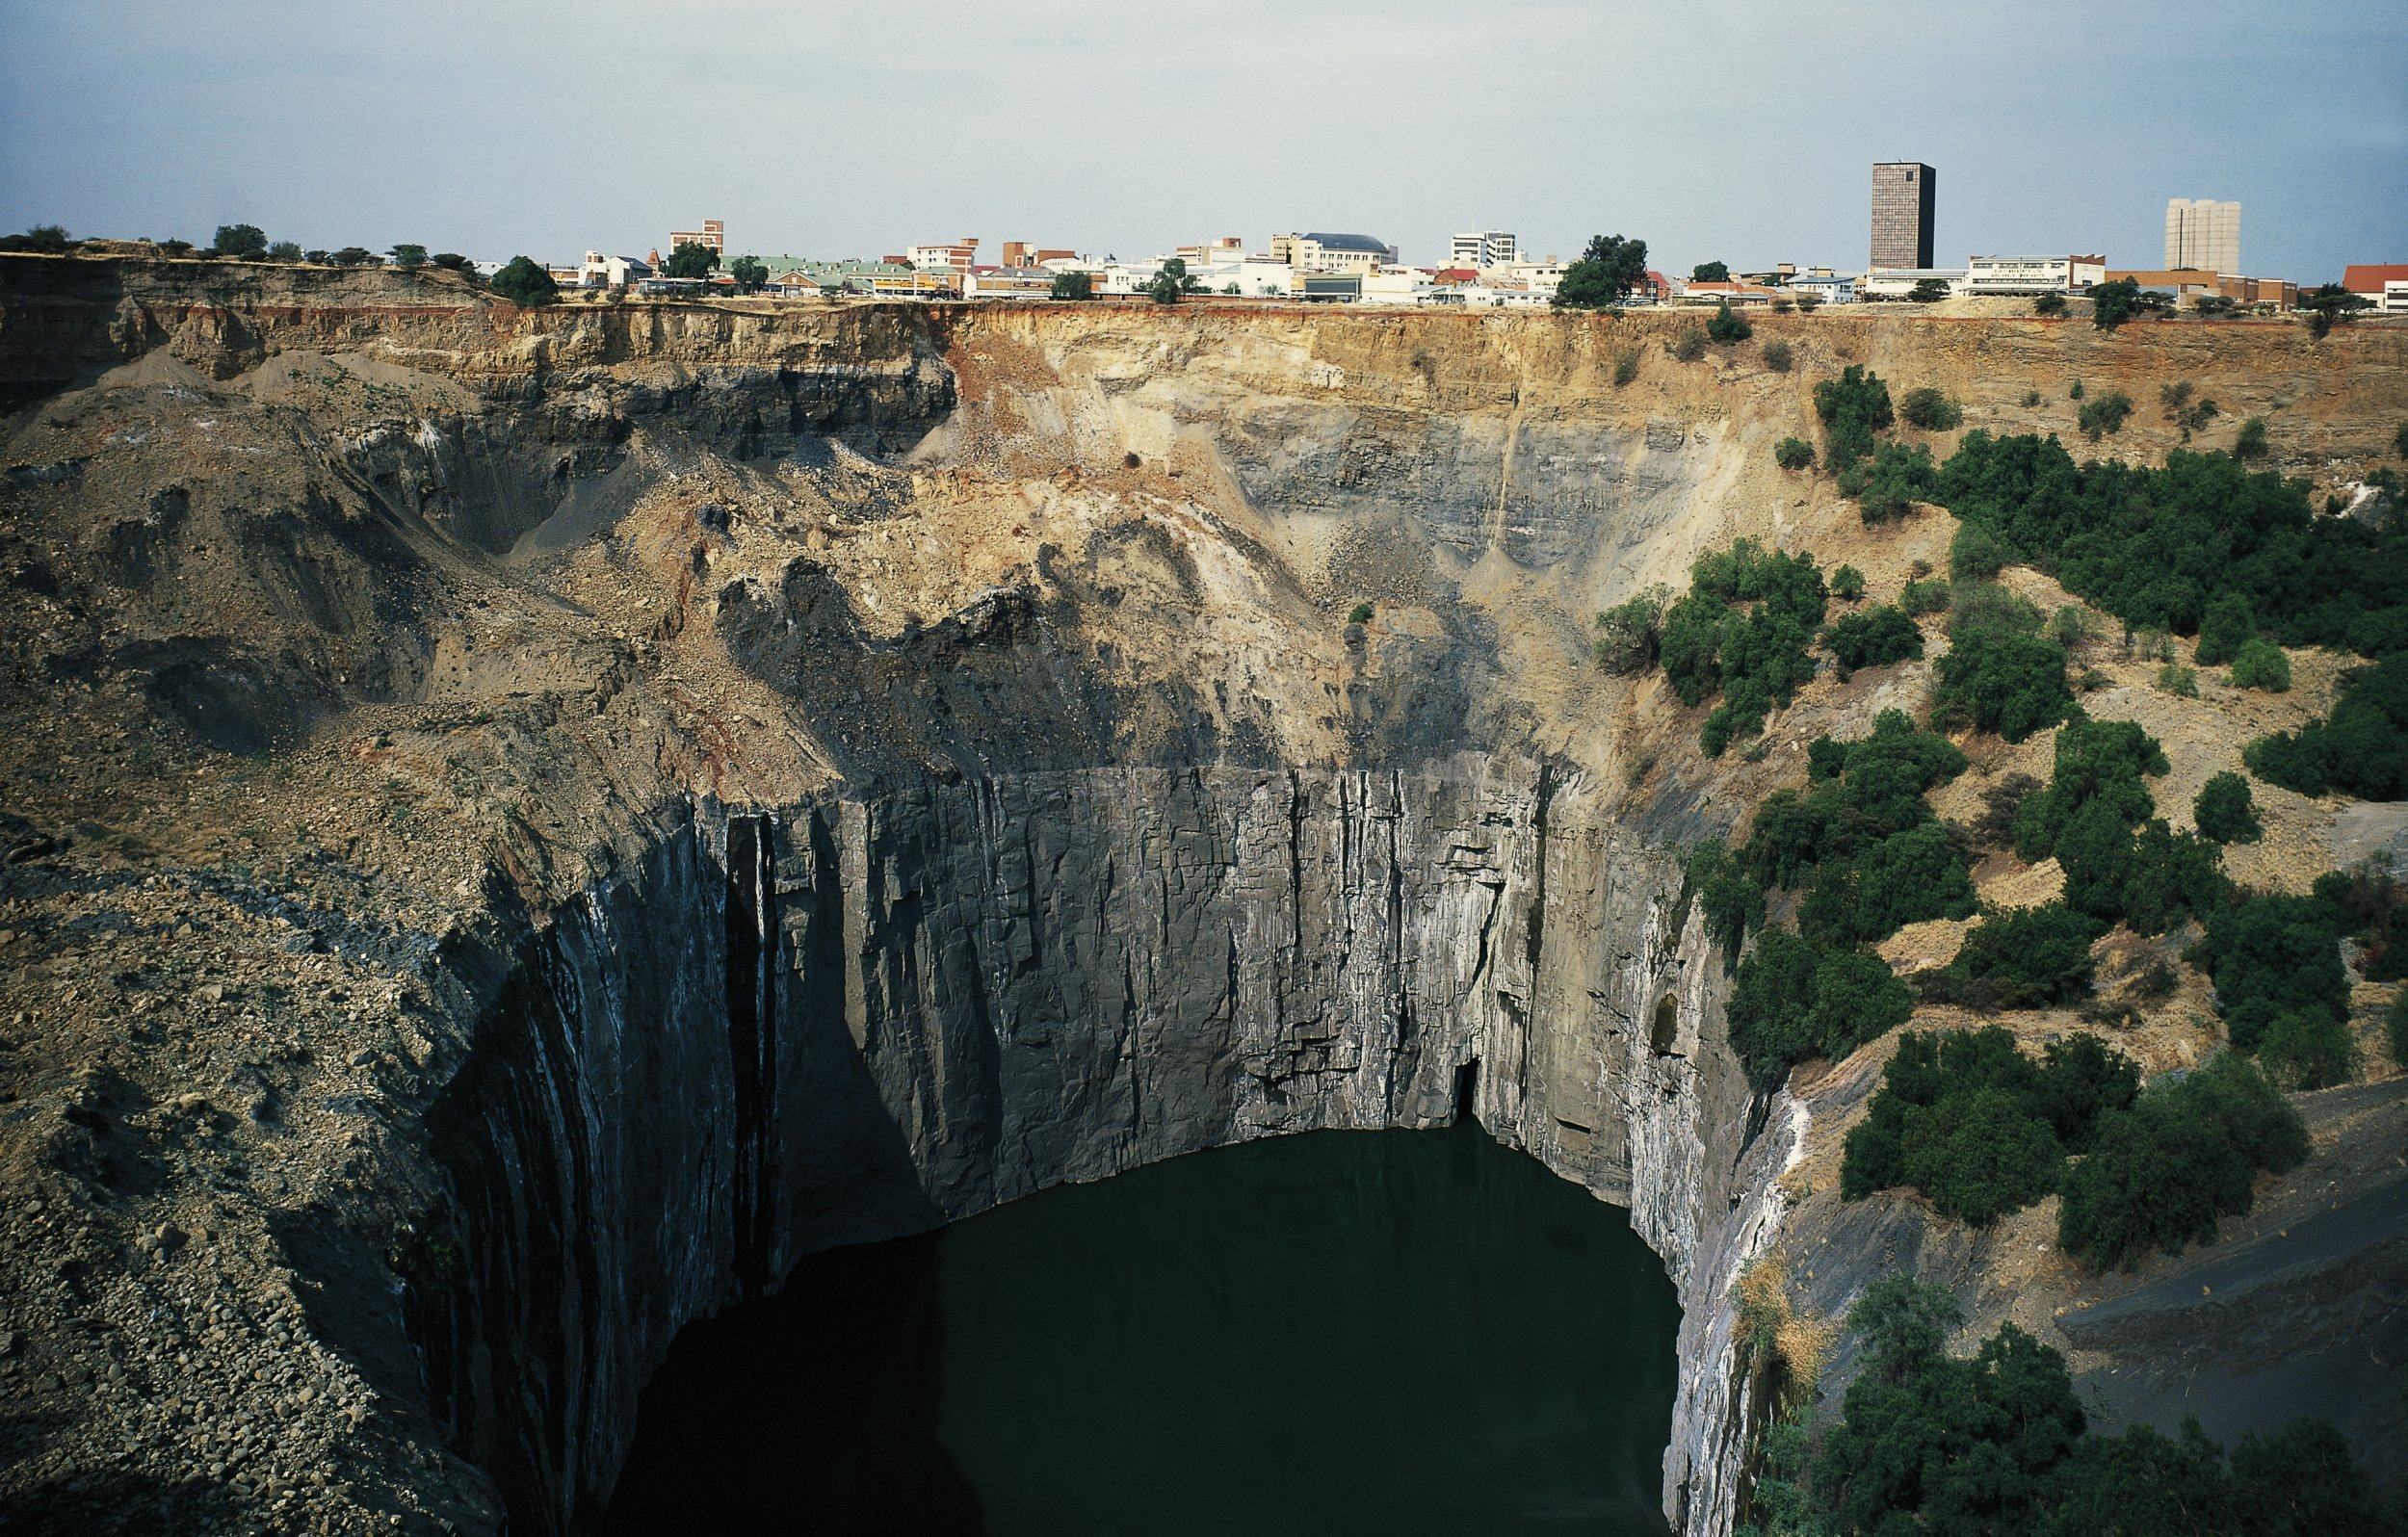 The Big Hole, a diamond mine in South Africa